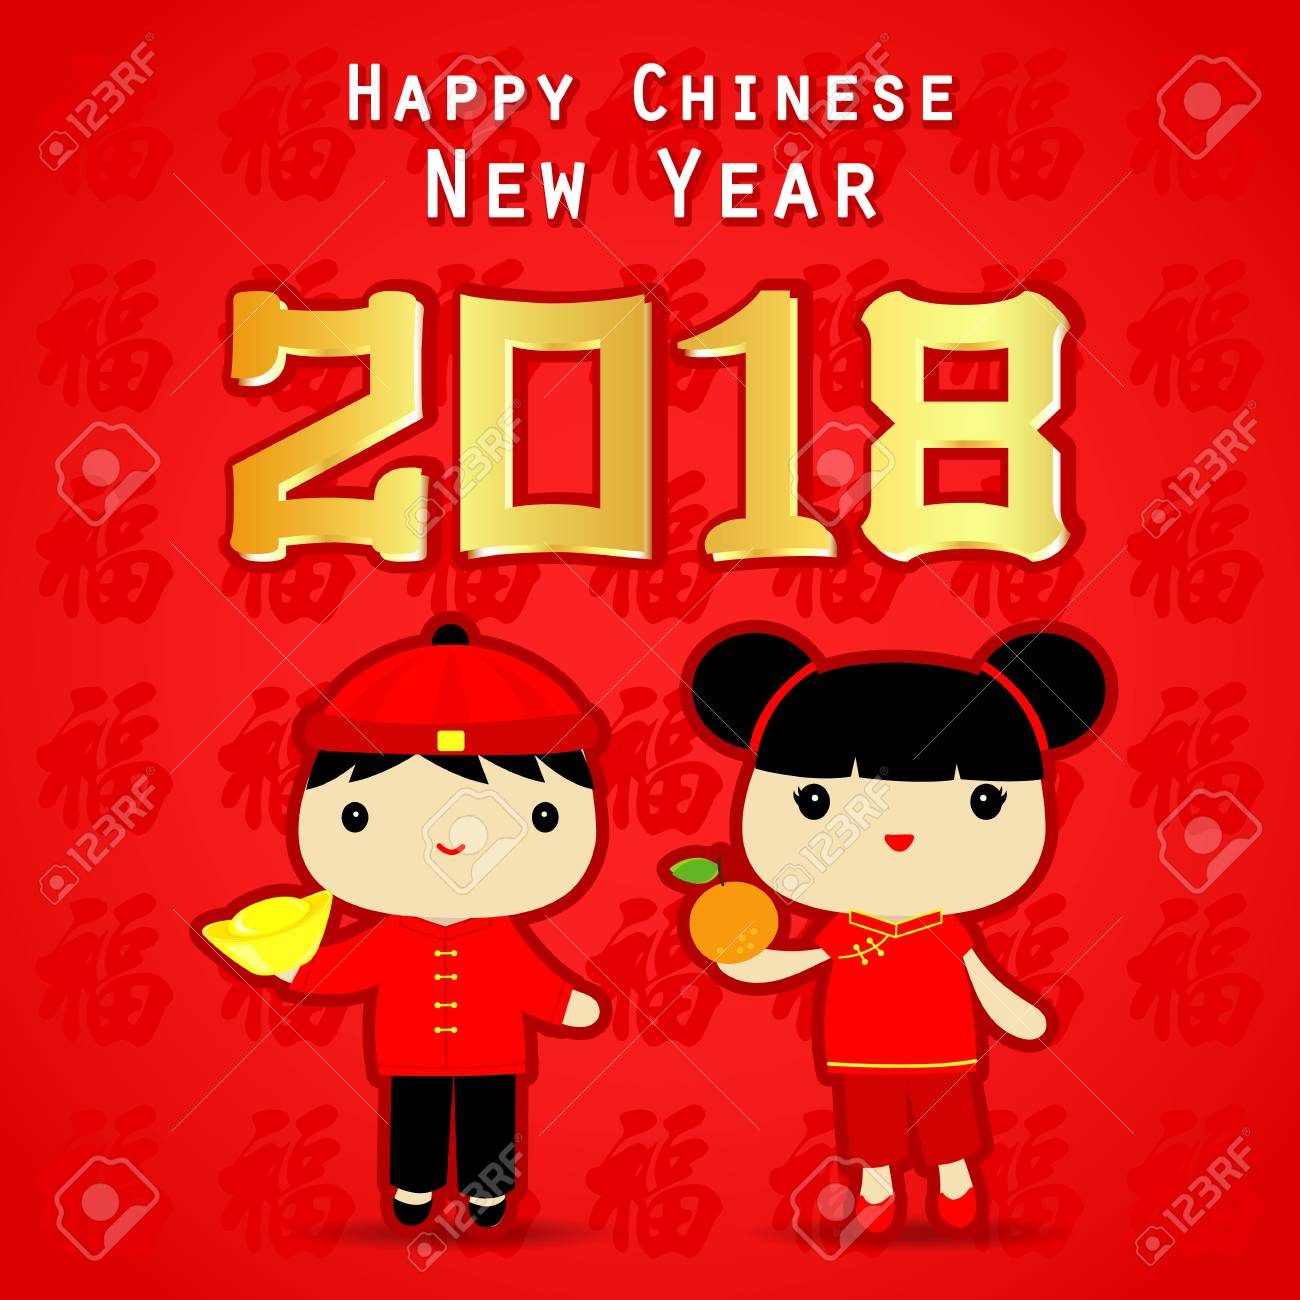 Lunar new year 2018 clipart clip royalty free download Chinese New Year 2018 Clipart (106+ images in Collection) Page 2 clip royalty free download